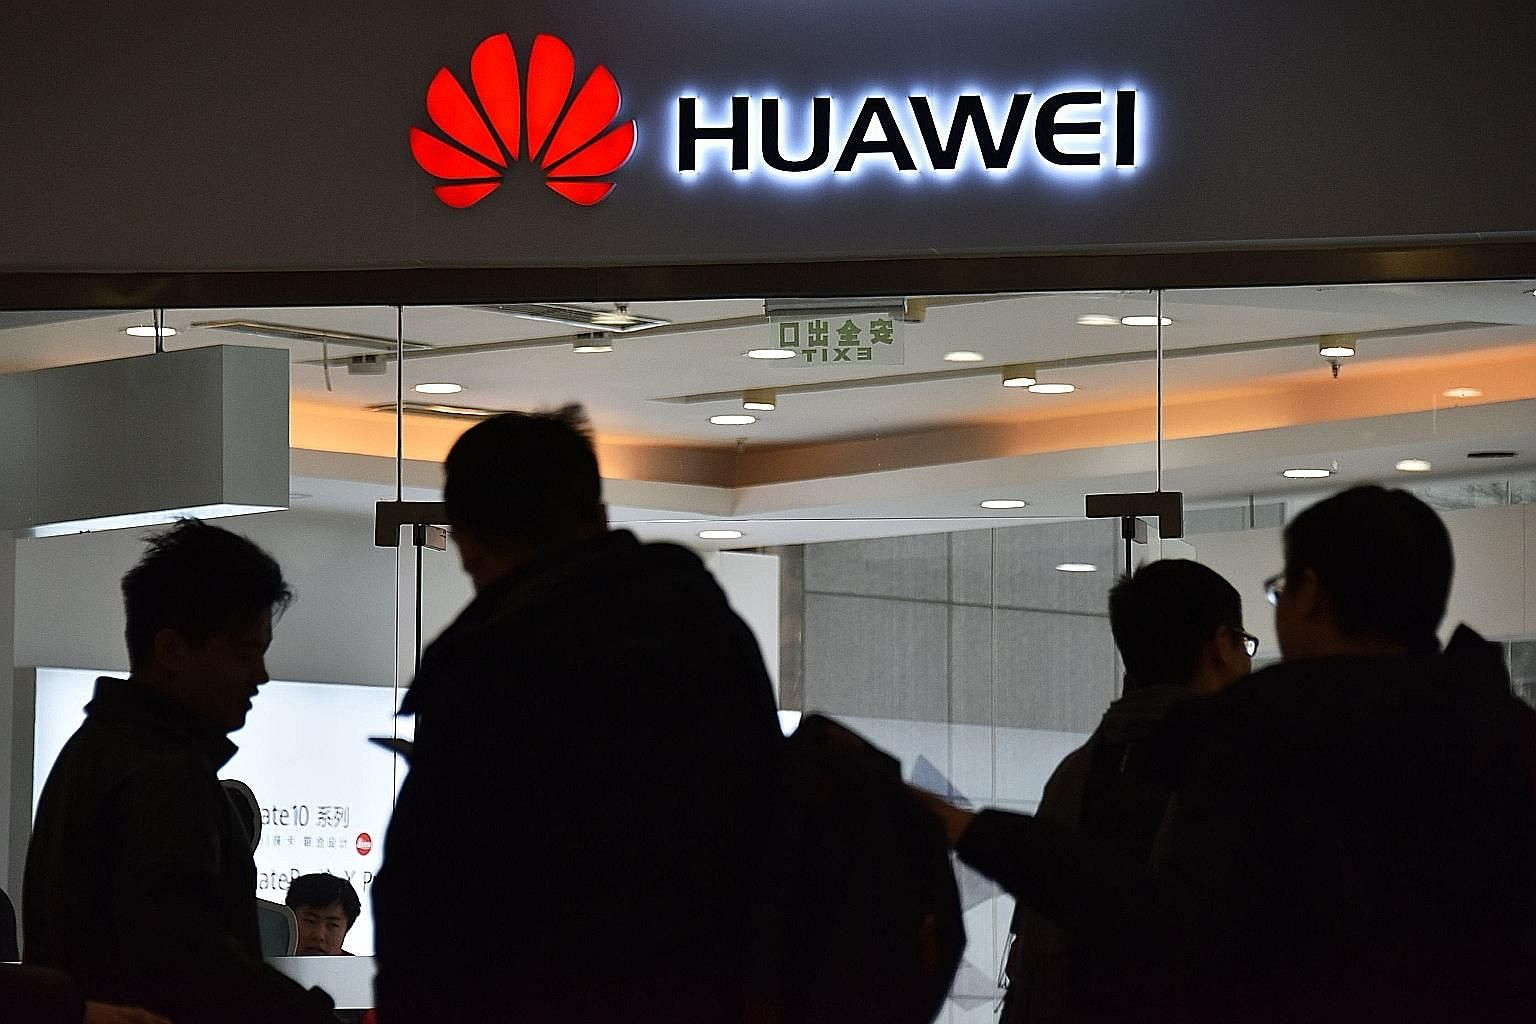 This year, Huawei outstripped Apple in smartphone sales. Backed by Beijing, it has been aggressively selling 5G products around the world, alarming the US national security establishment, which is concerned that Huawei is embedding technology in its